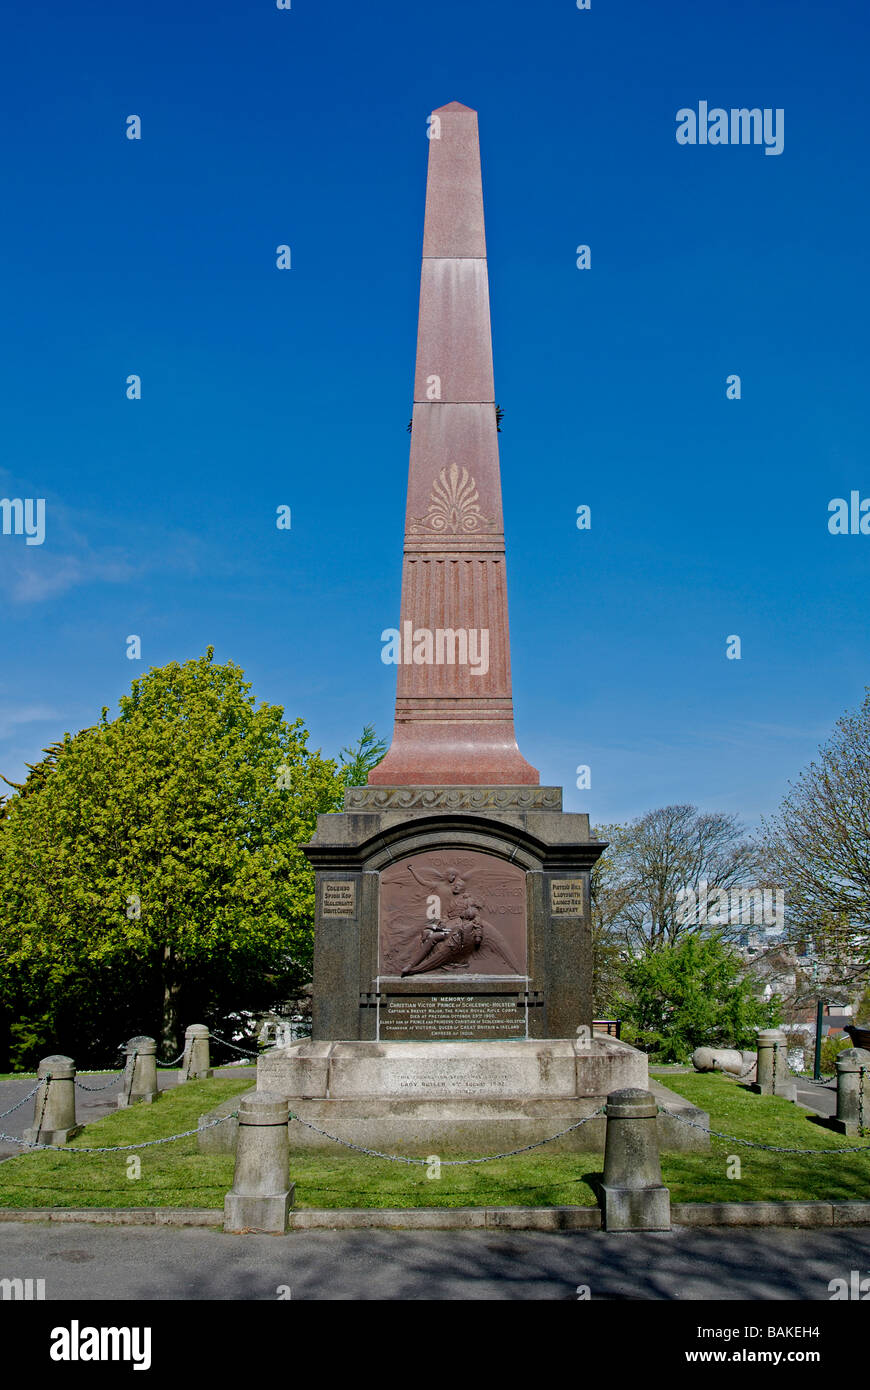 the south african war memorial on the hoe at plymouth,devon,uk - Stock Image